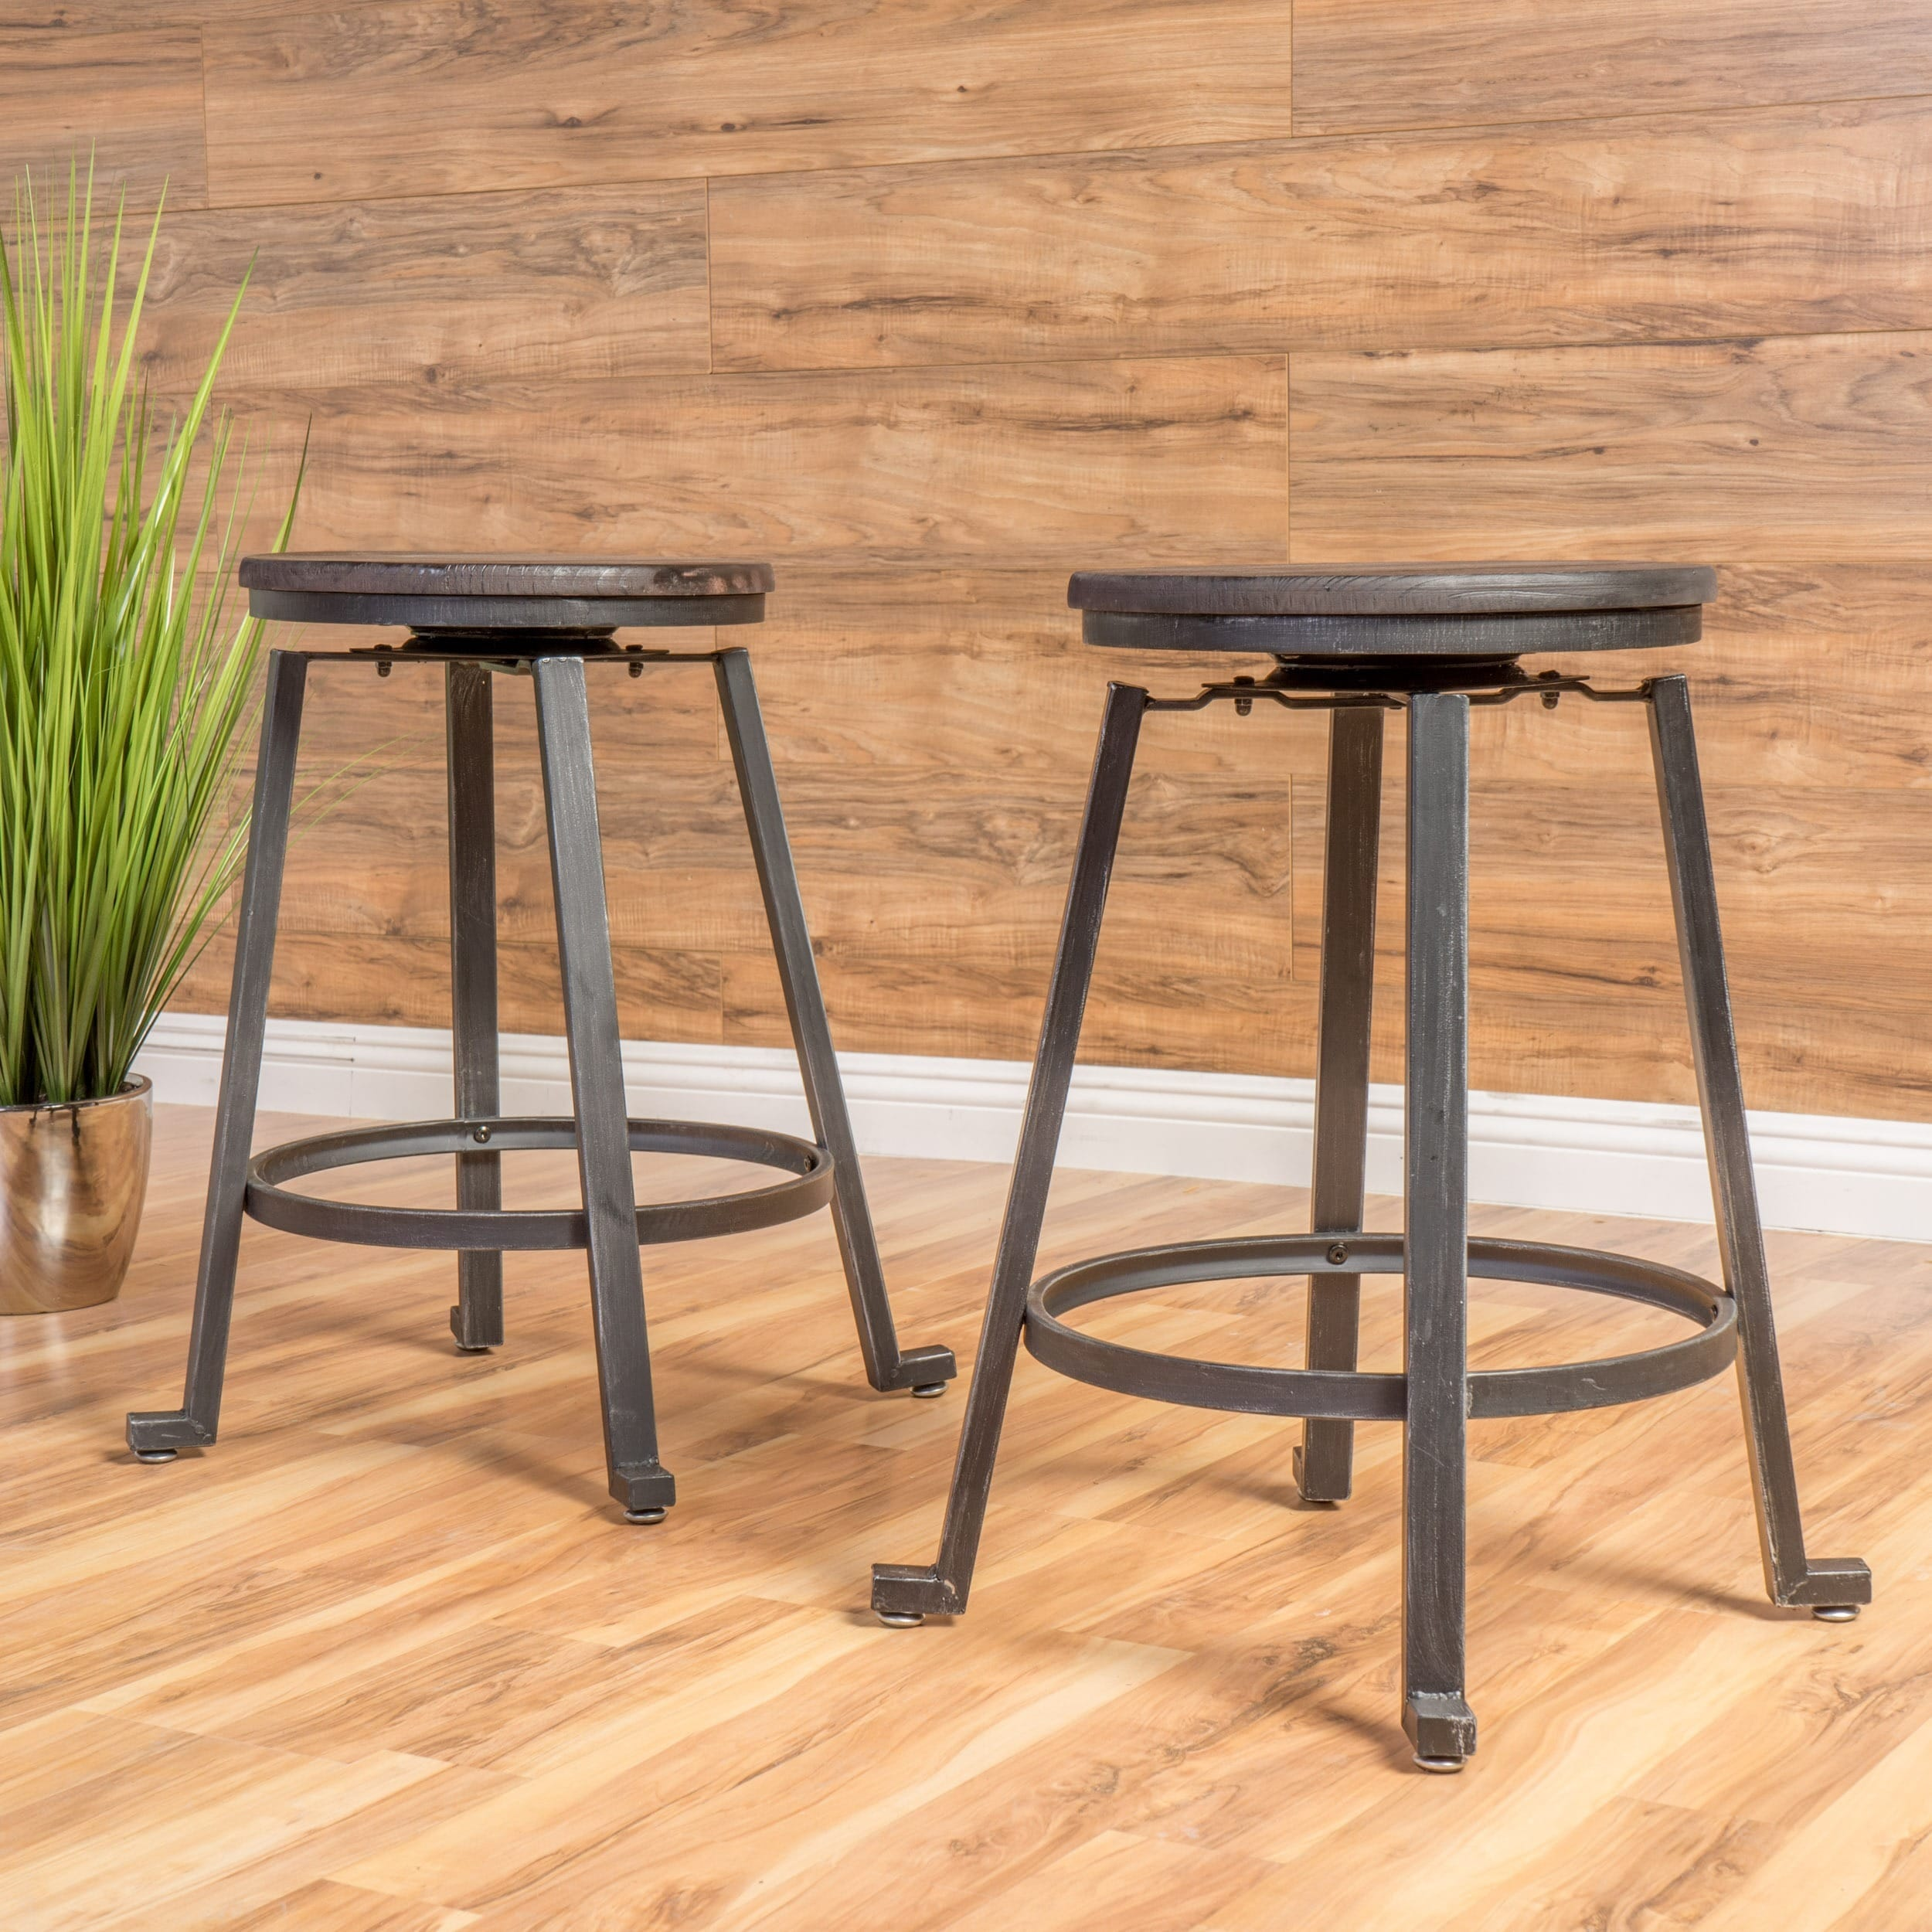 Shop lolita 24 inch rustic iron counter stool set of 2 by christopher knight home free shipping today overstock com 12200532